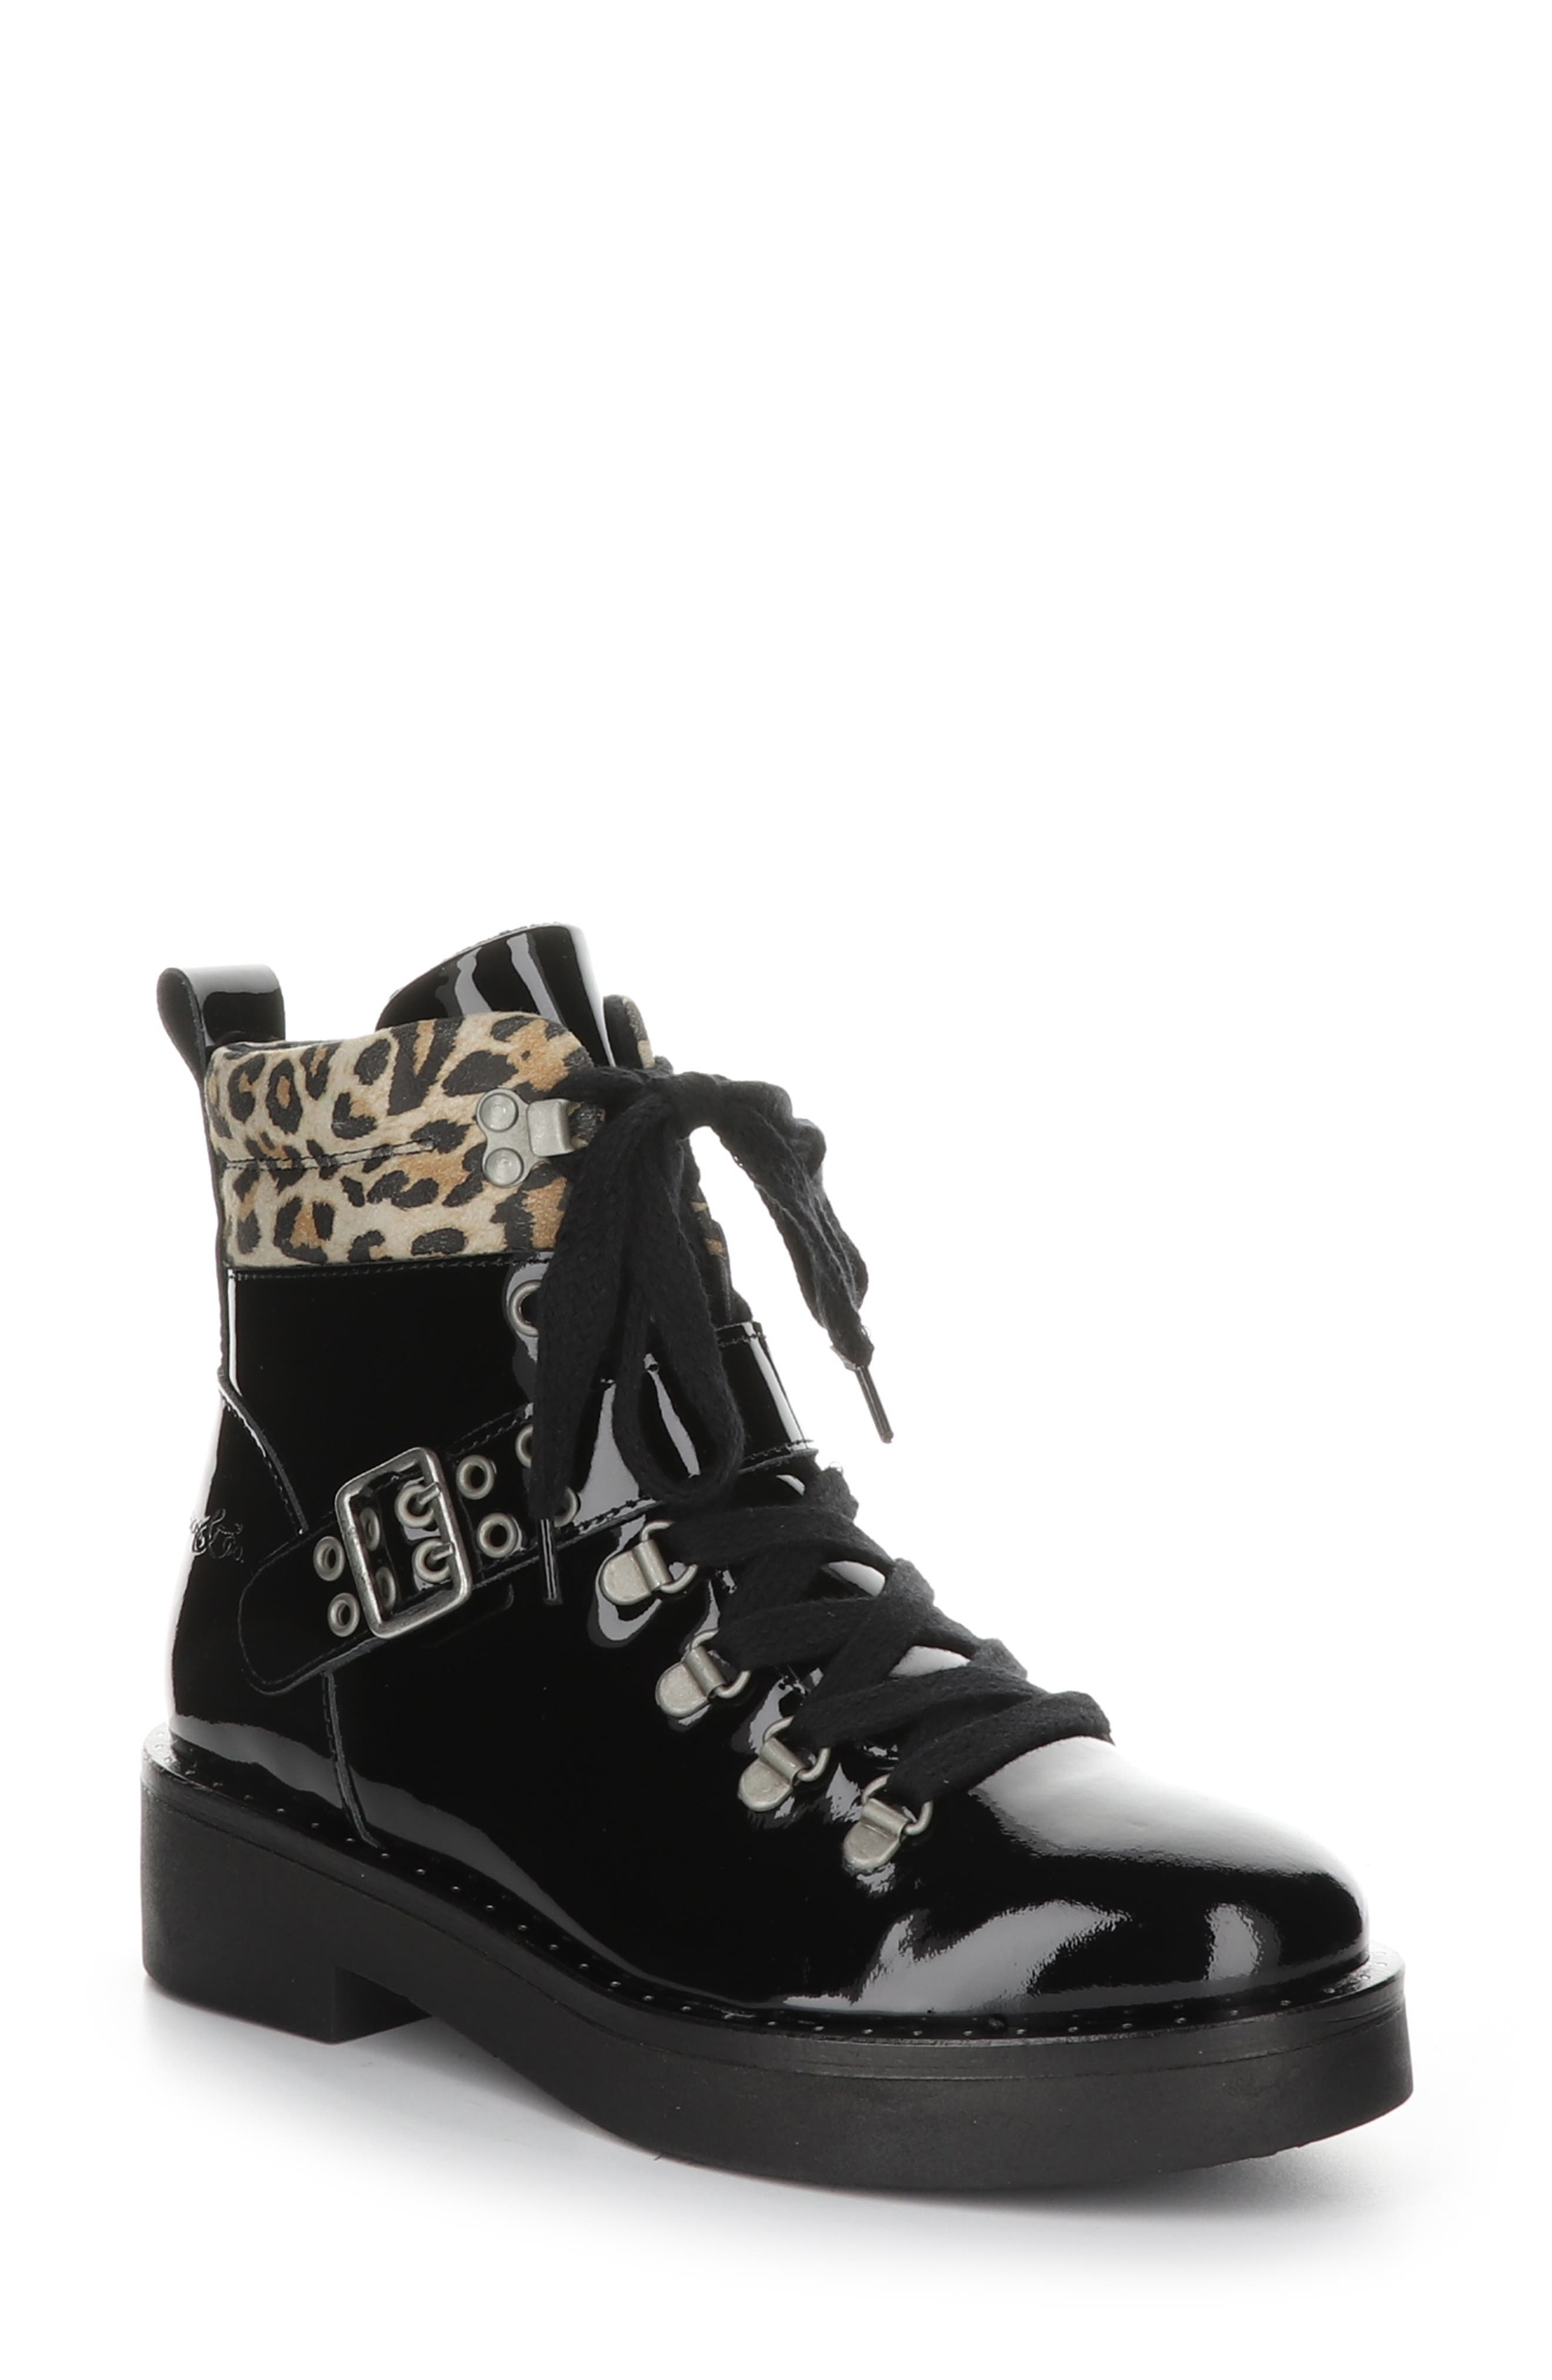 This alpine-inspired boot delivers lots of attitude and plenty of comfort as you stride along slick city streets or chilly mountain trails. Lined with fleece to keep your feet toasty warm, this boot features three layers of foam and EVA cushioning, an adjustable lace-up front and a chunky, durable rubber sole that\\\'s hollow on the inside for a lightweight feel. A buckle strap, contrast padded collar and studs along the welt give it the edge